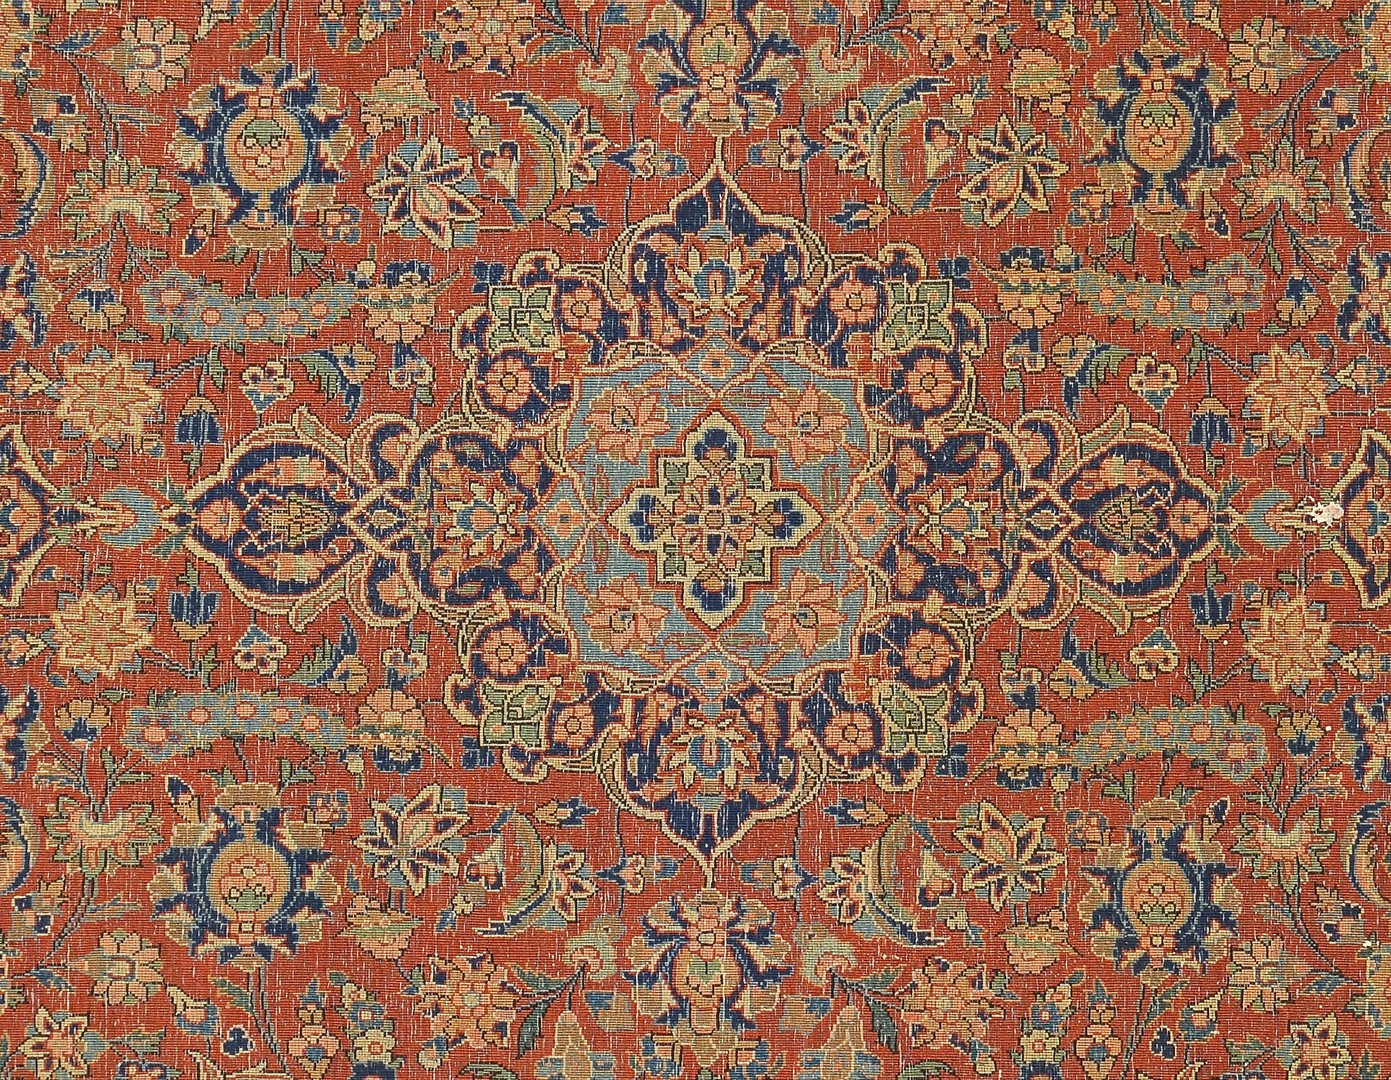 Lot 248: Persian Kashan area rug, c. 1920-30